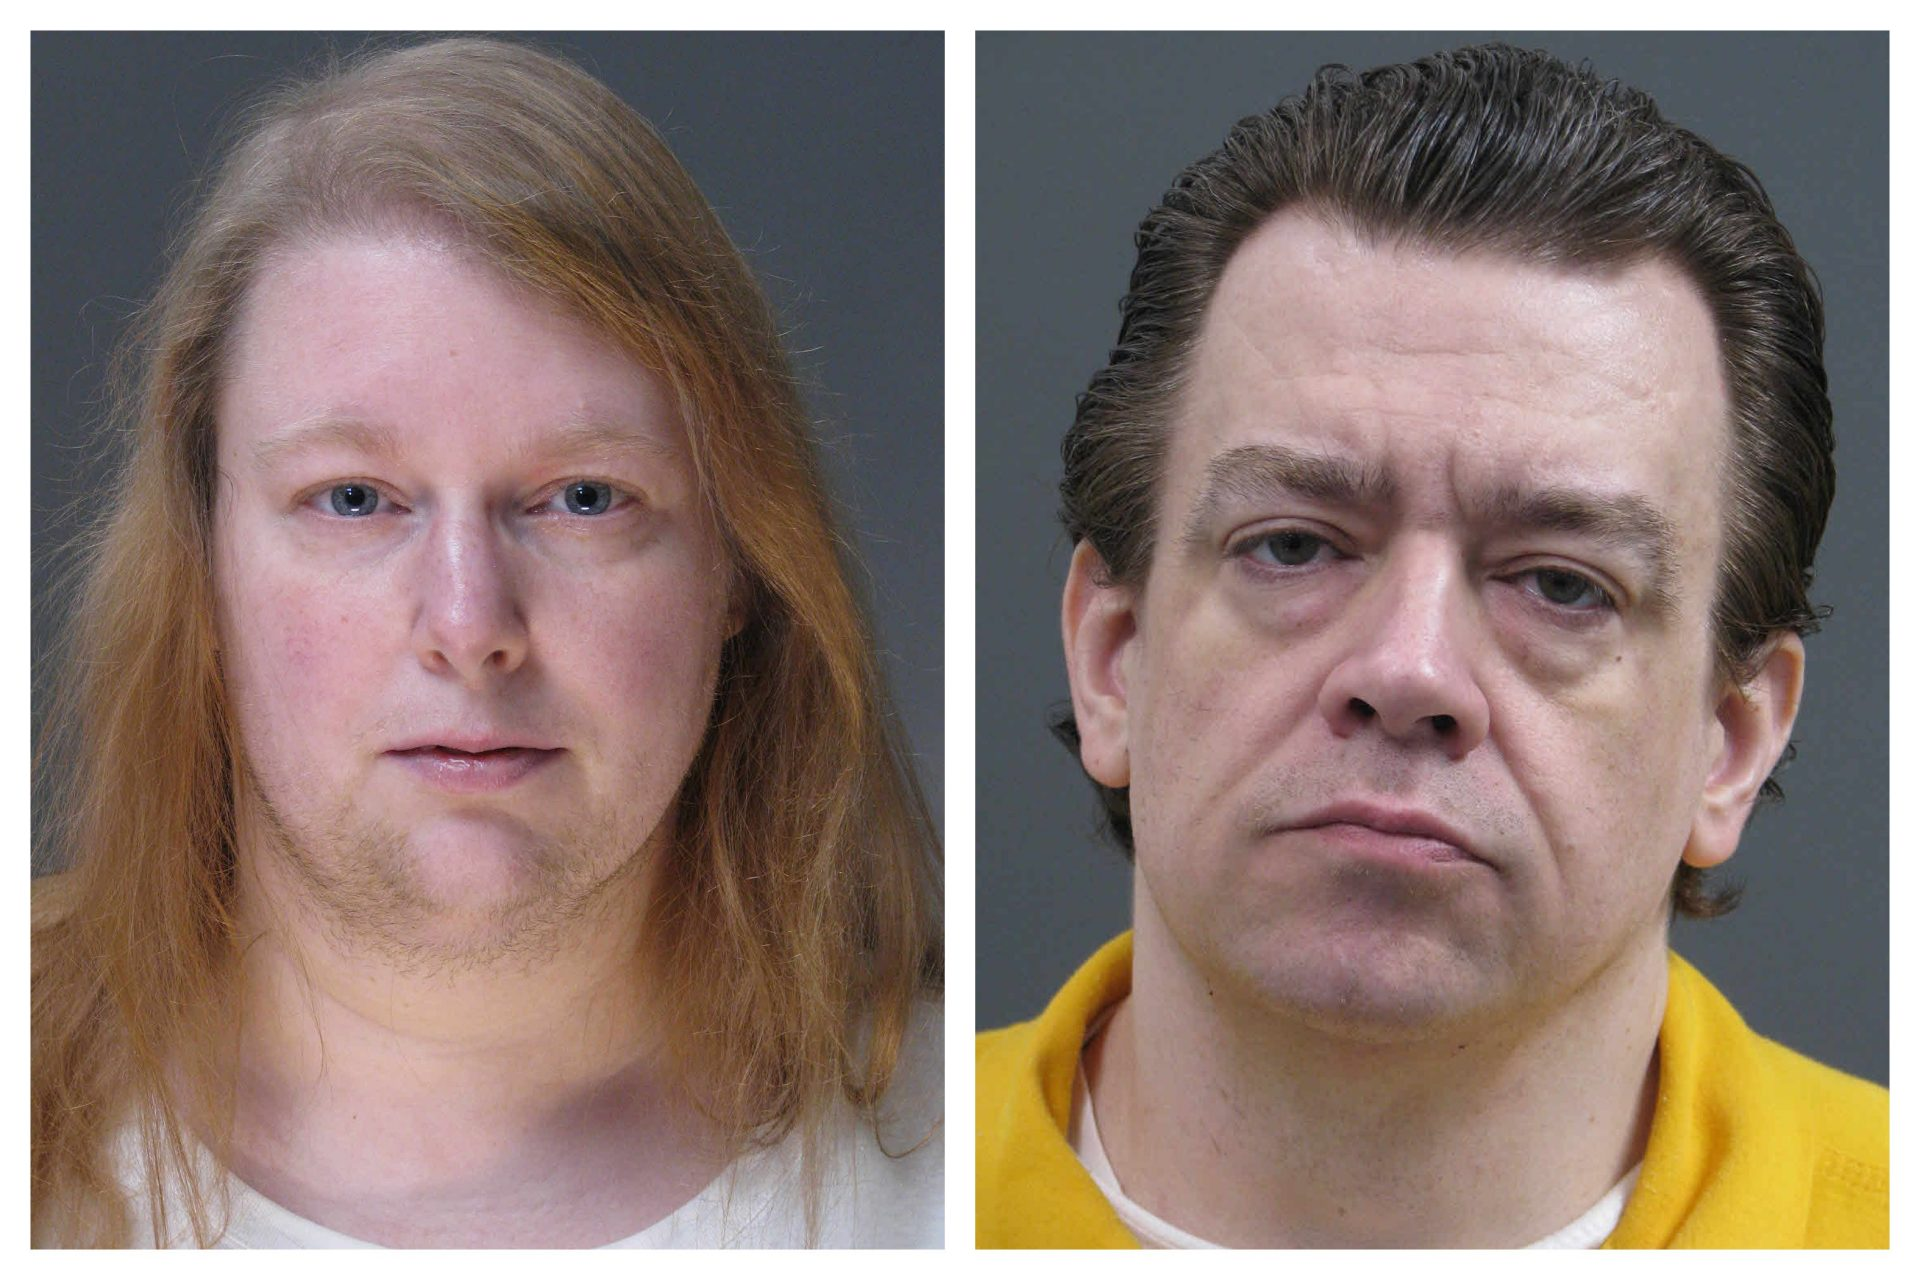 This combination of undated file photos provided Friday, March 29, 2019, by the Bucks County District Attorney's Office shows Sara Packer, left, and Jacob Sullivan.